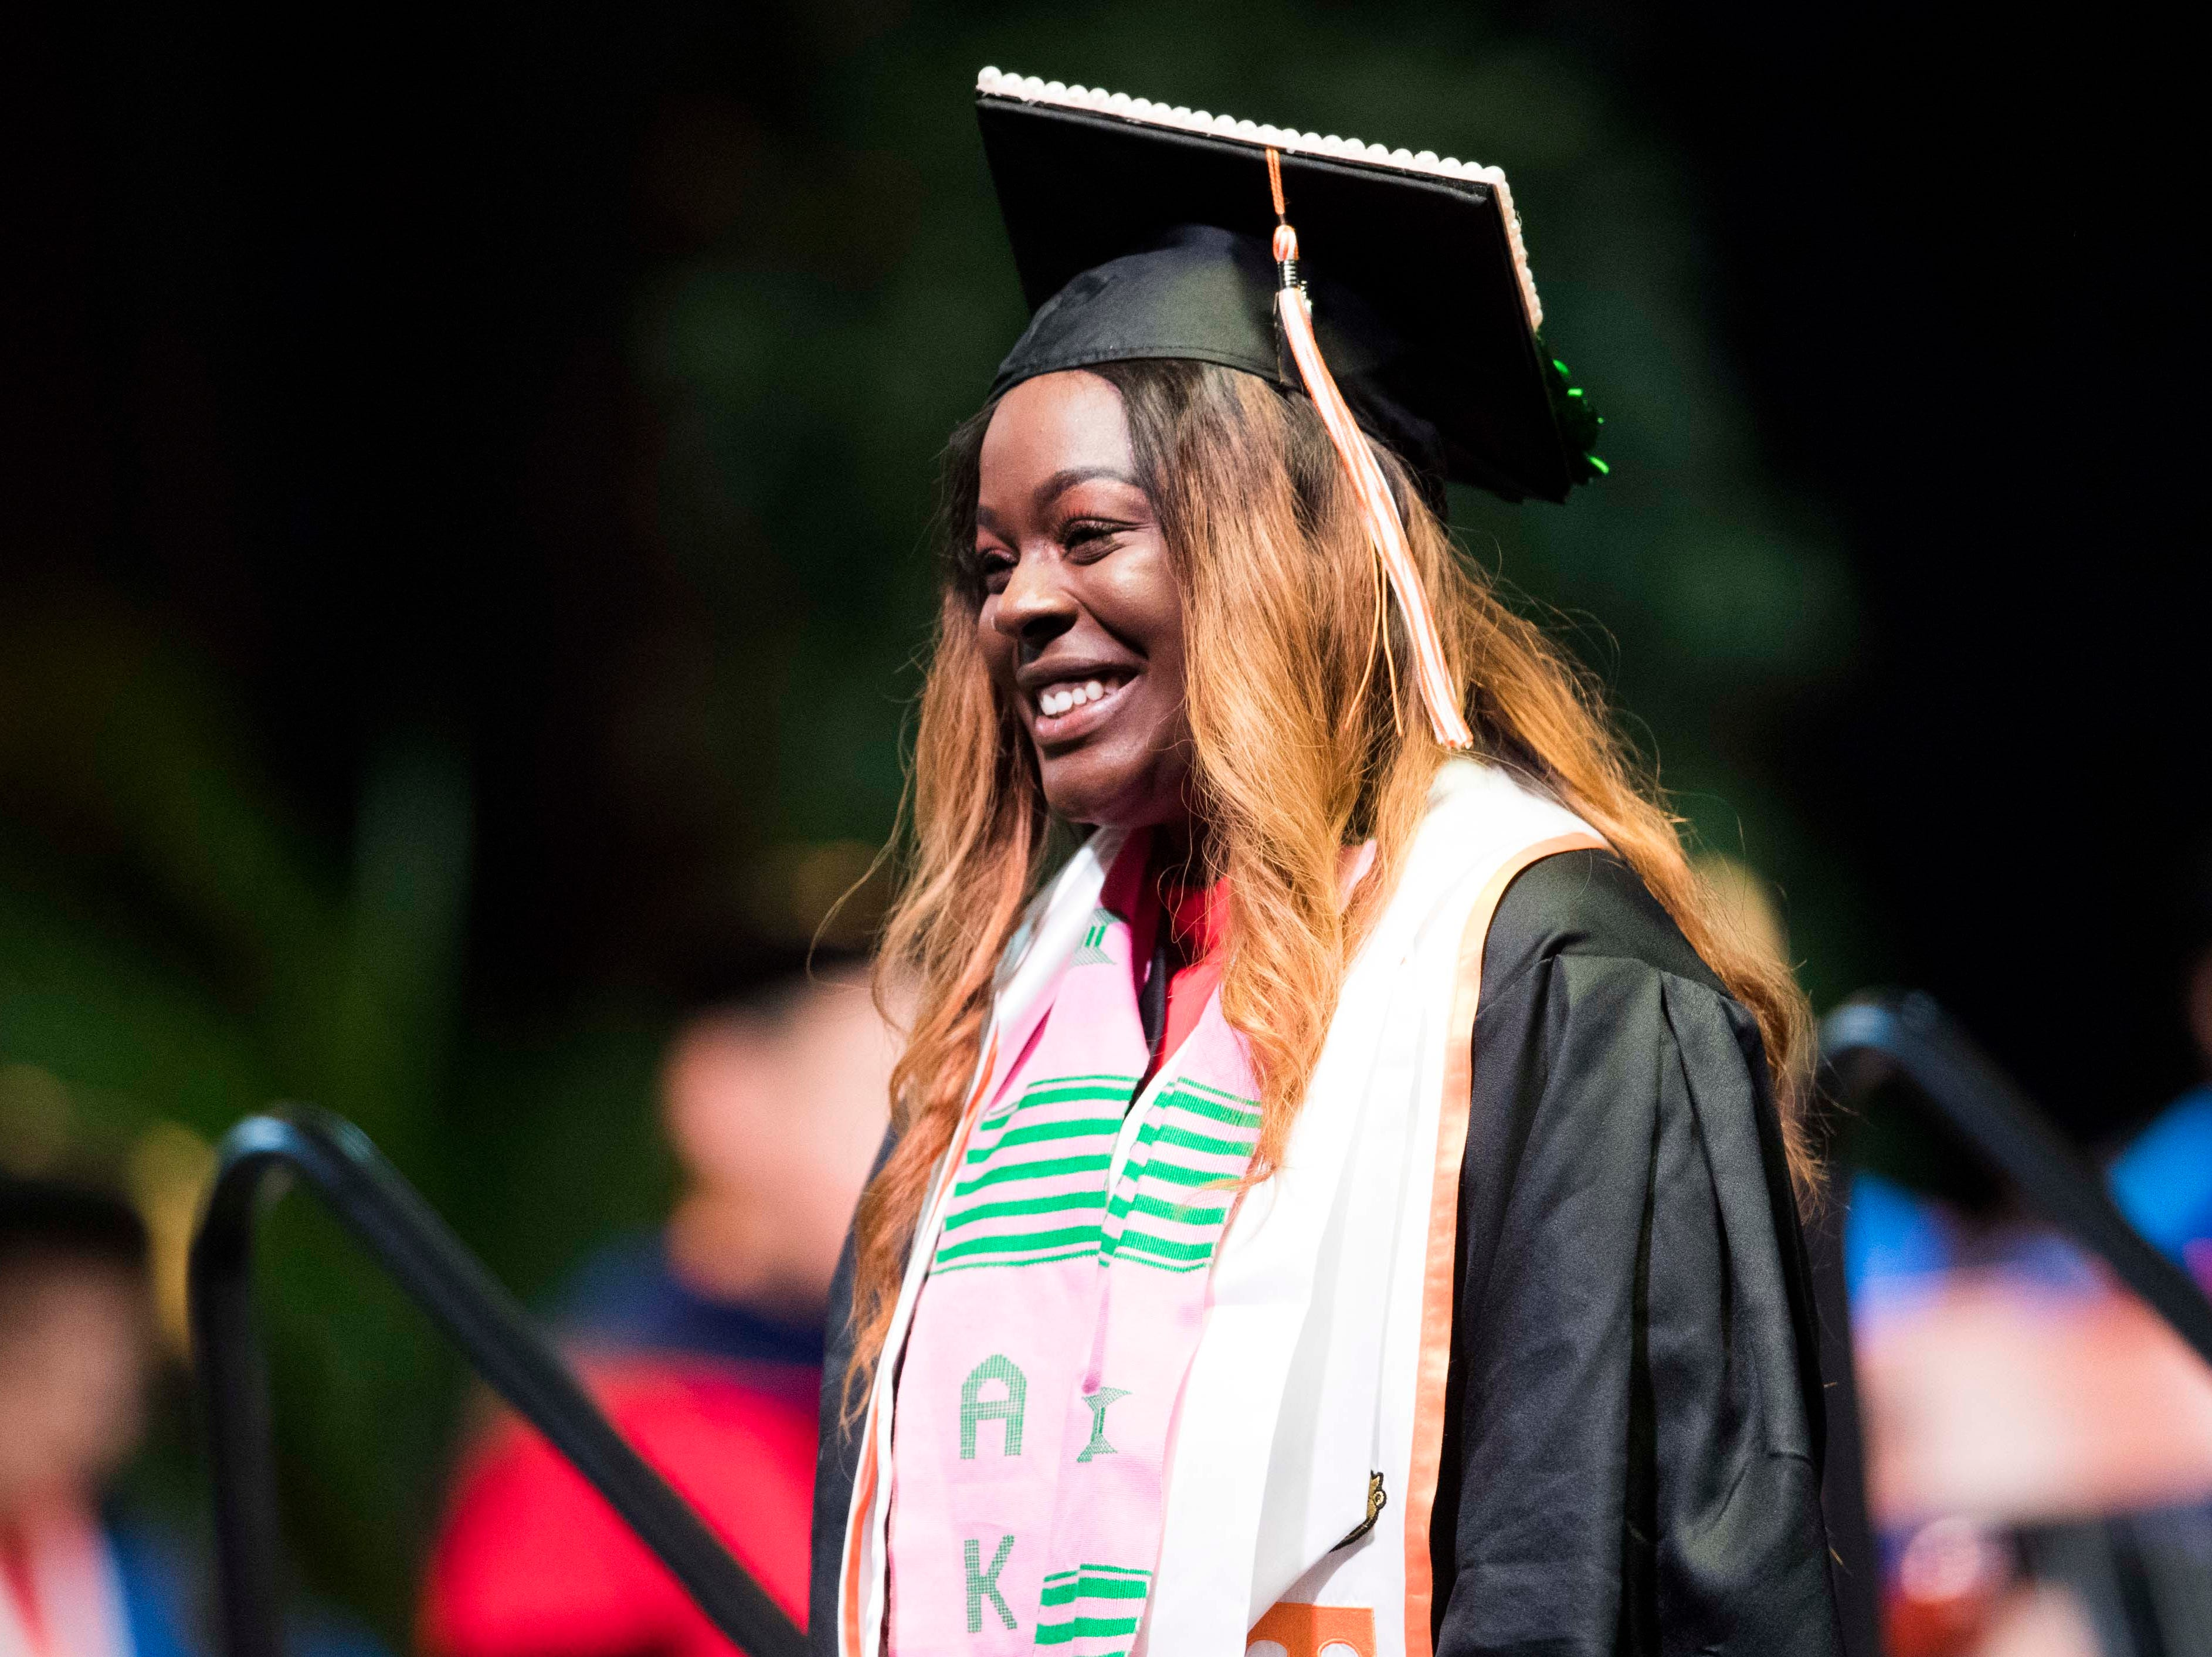 A graduate walks across the stage during University of Tennessee's College of Arts and Sciences commencement in Thompson-Boling arena in Knoxville, Saturday, May 11, 2019.